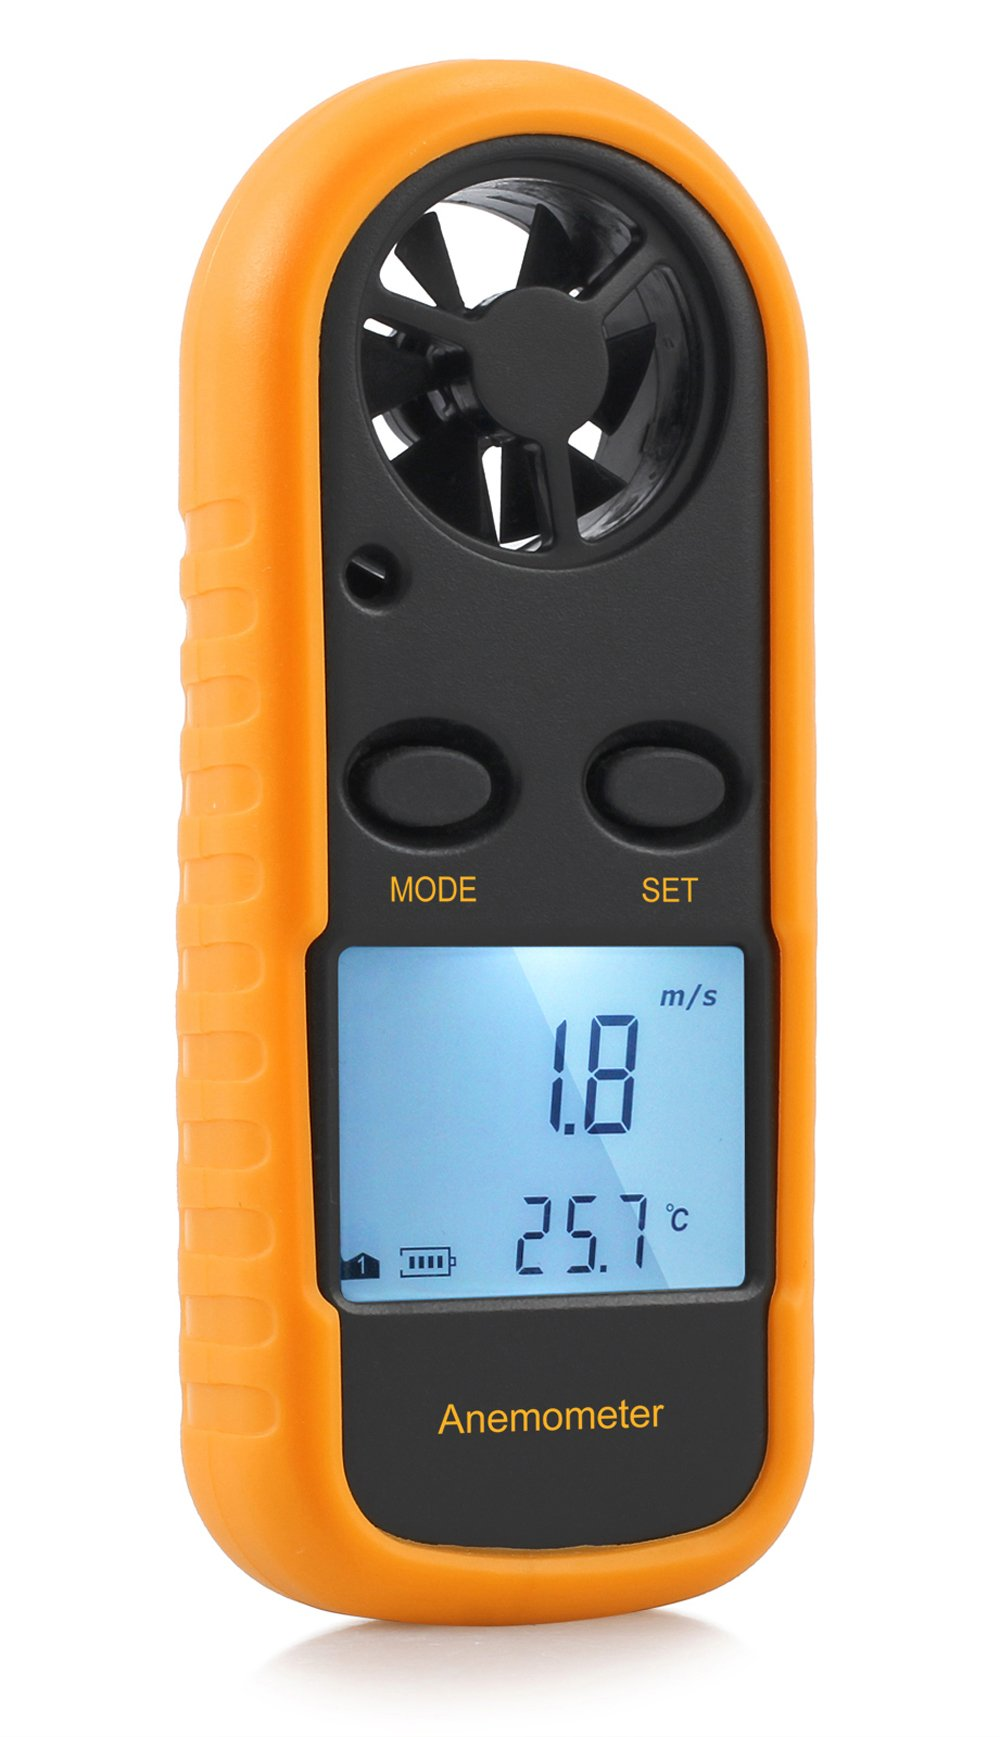 Tanice Anemometer Digital LED Wind Speed Meter Gauge Air Flow Velocity Measurement Handheld Thermometer with Backlight for Windsurfing Sailing Surfing Fishing